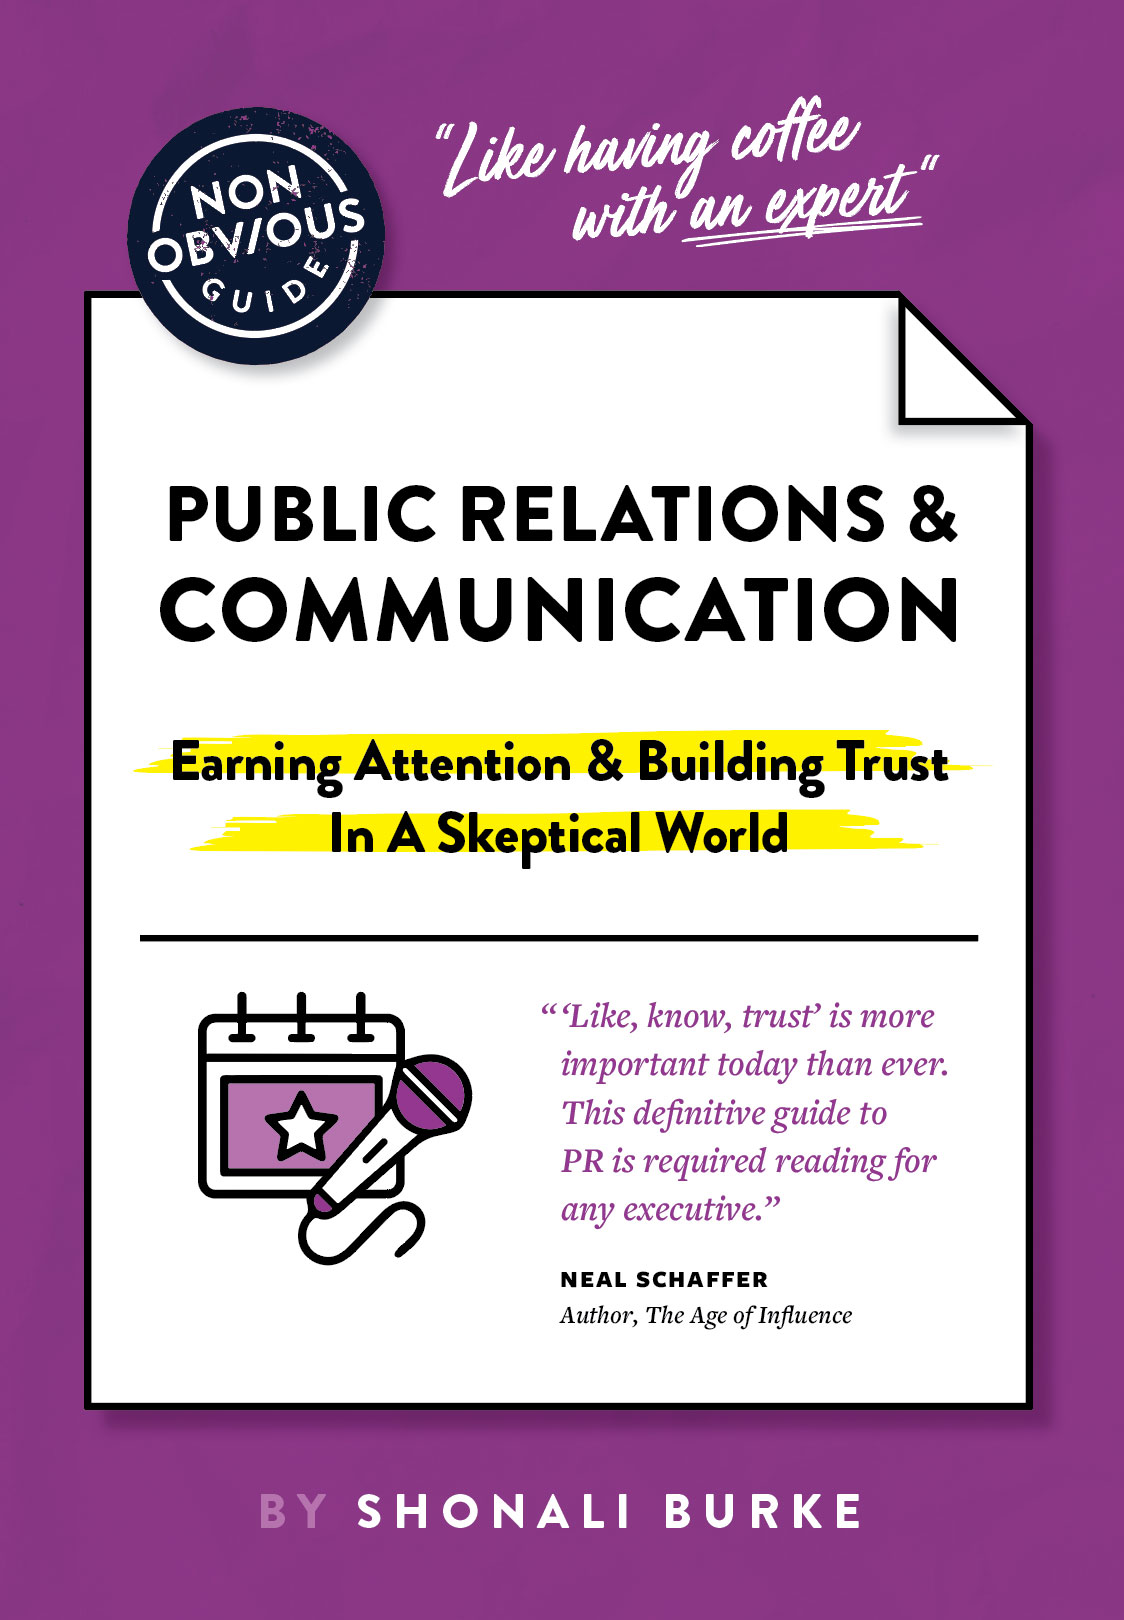 [BOOK ALERT] The Non-Obvious Guide to PR & Communication